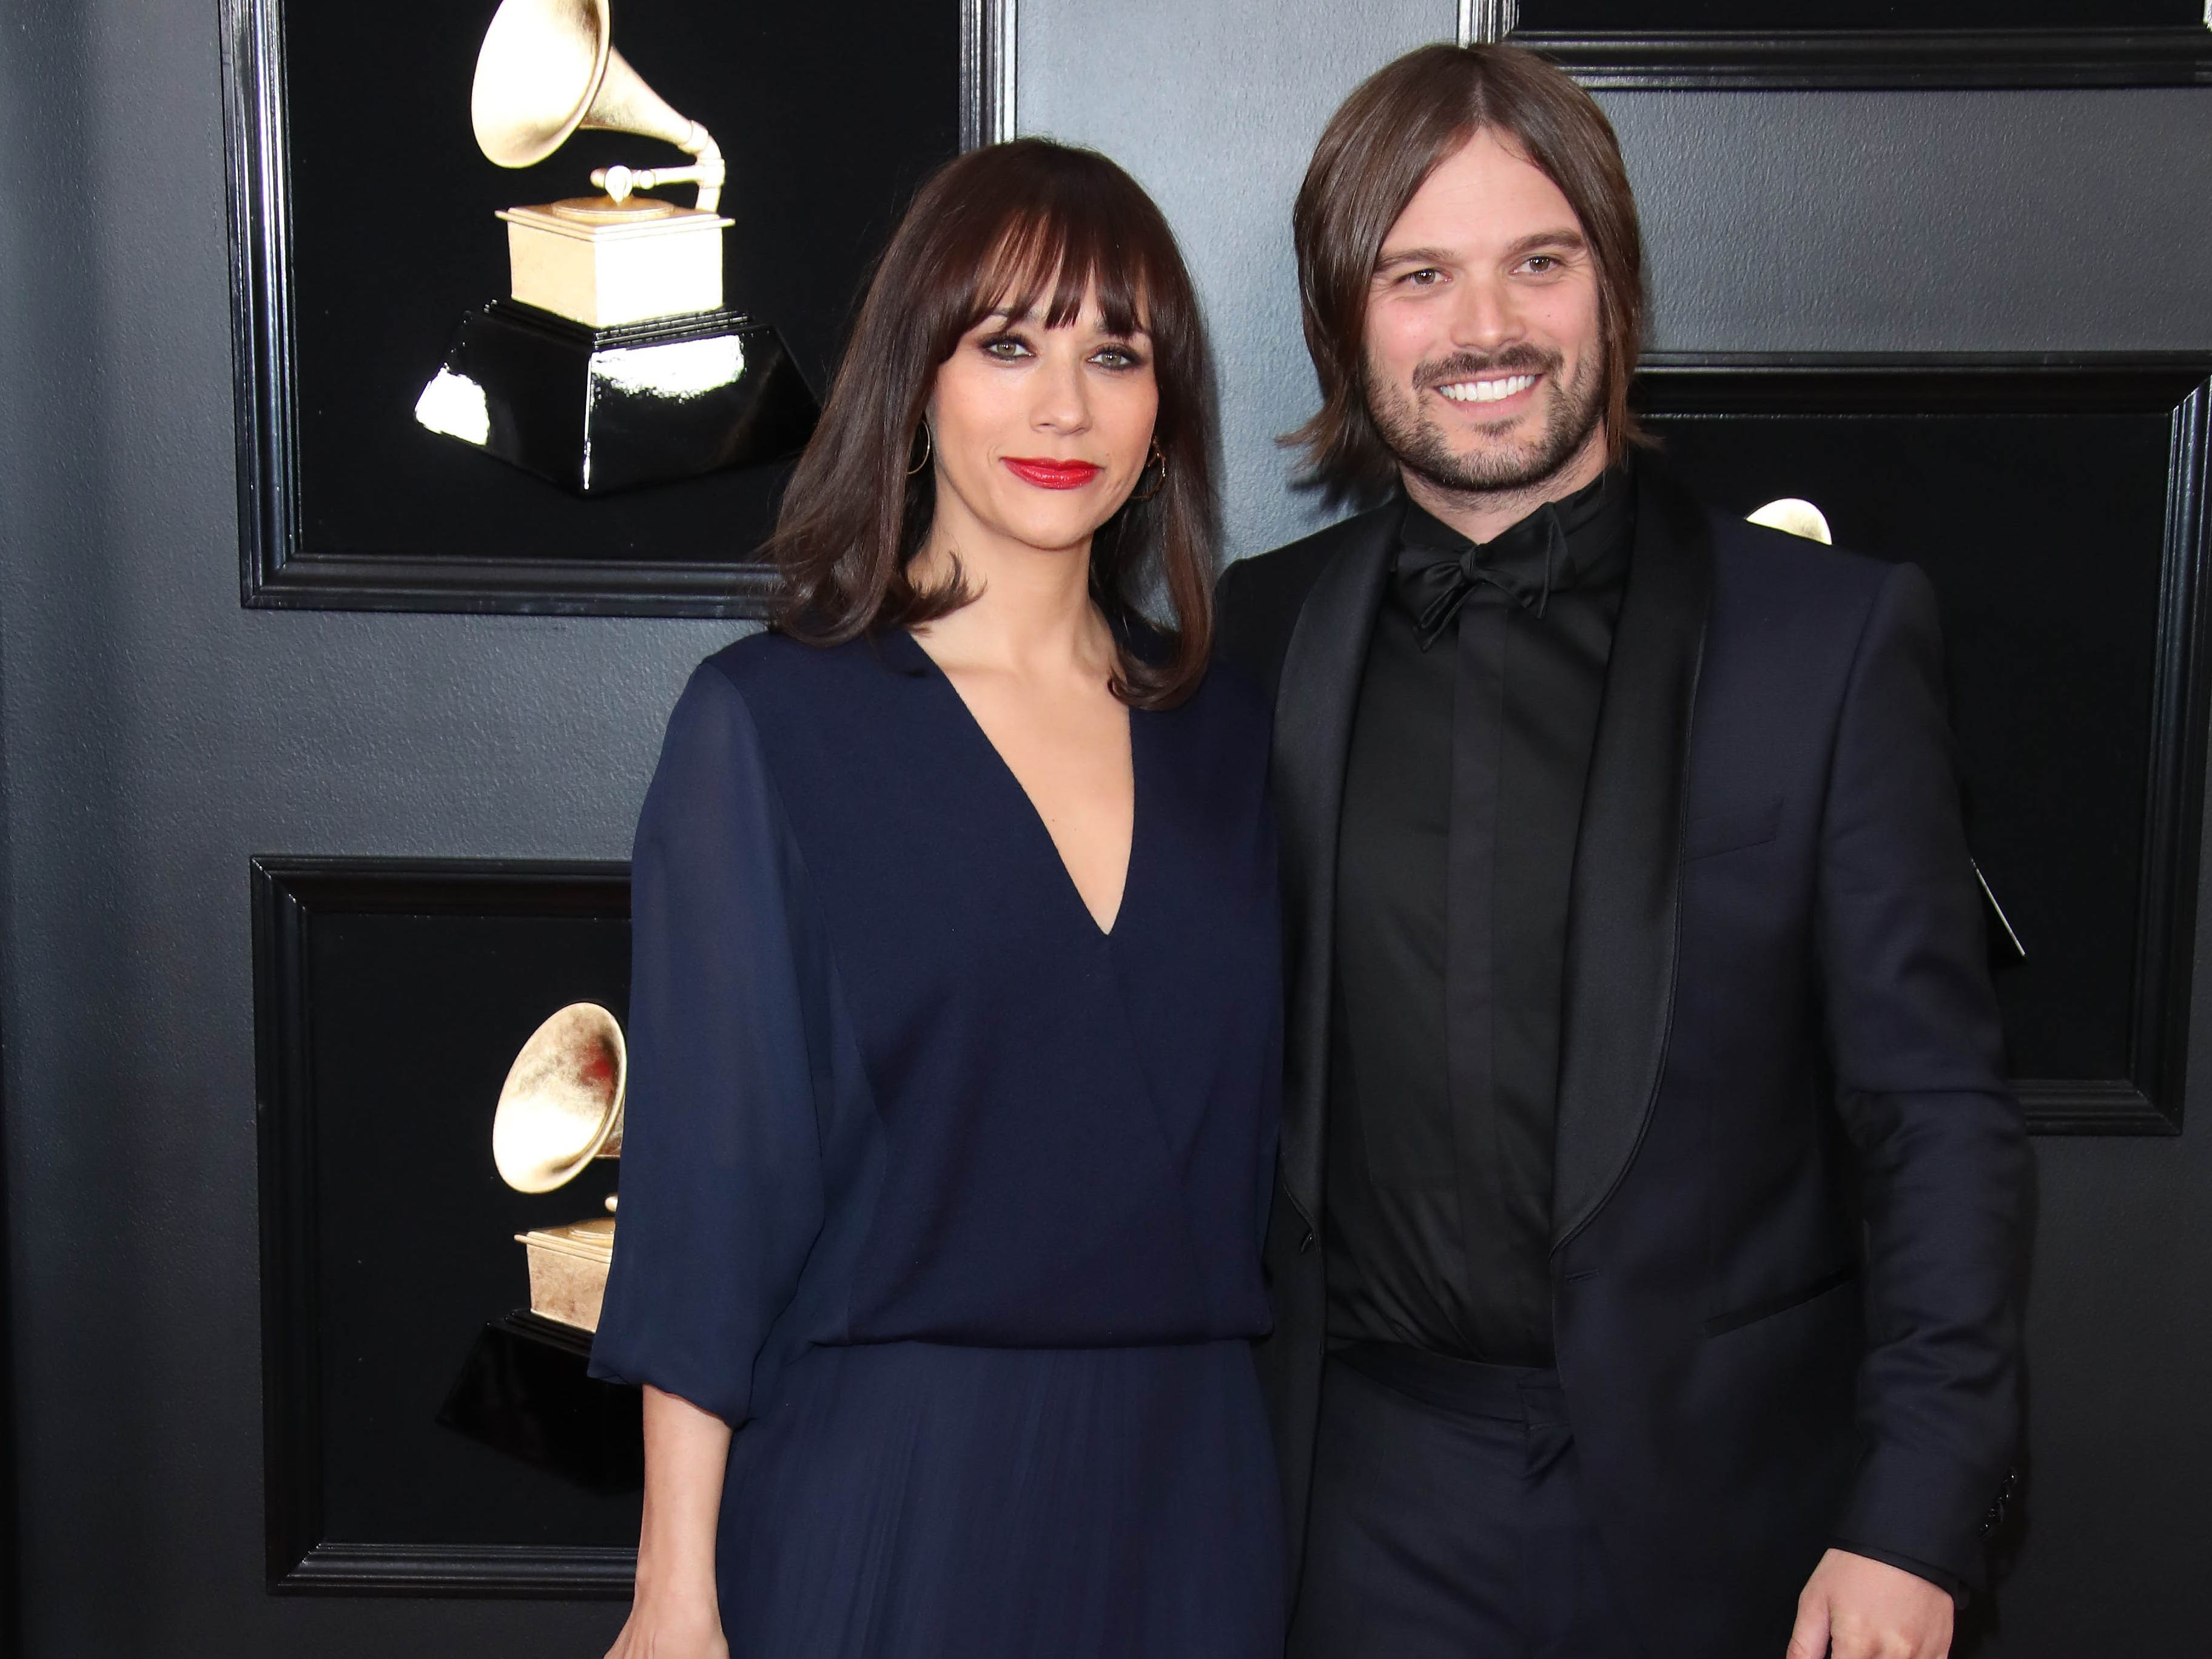 Rashida Jones, left and Alan Hicks attend the 61st Annual GRAMMY Awards on Feb. 10, 2019 at STAPLES Center in Los Angeles, Calif.